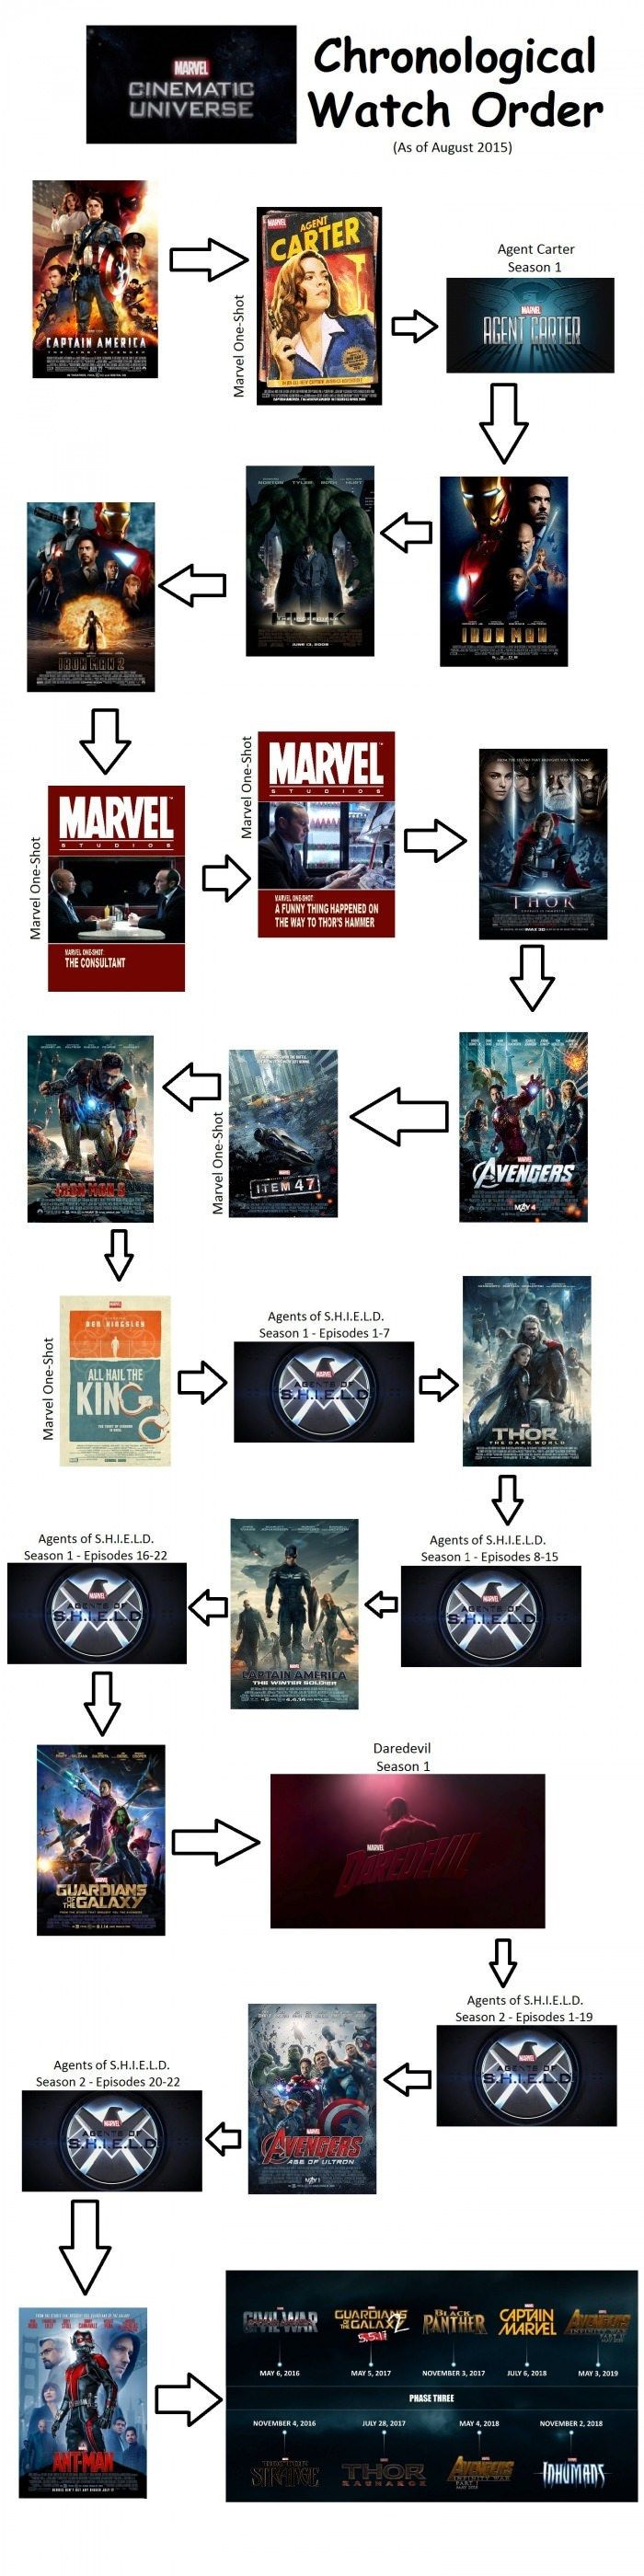 How to watch the Marvel Cinematic Universe in order. - Imgur